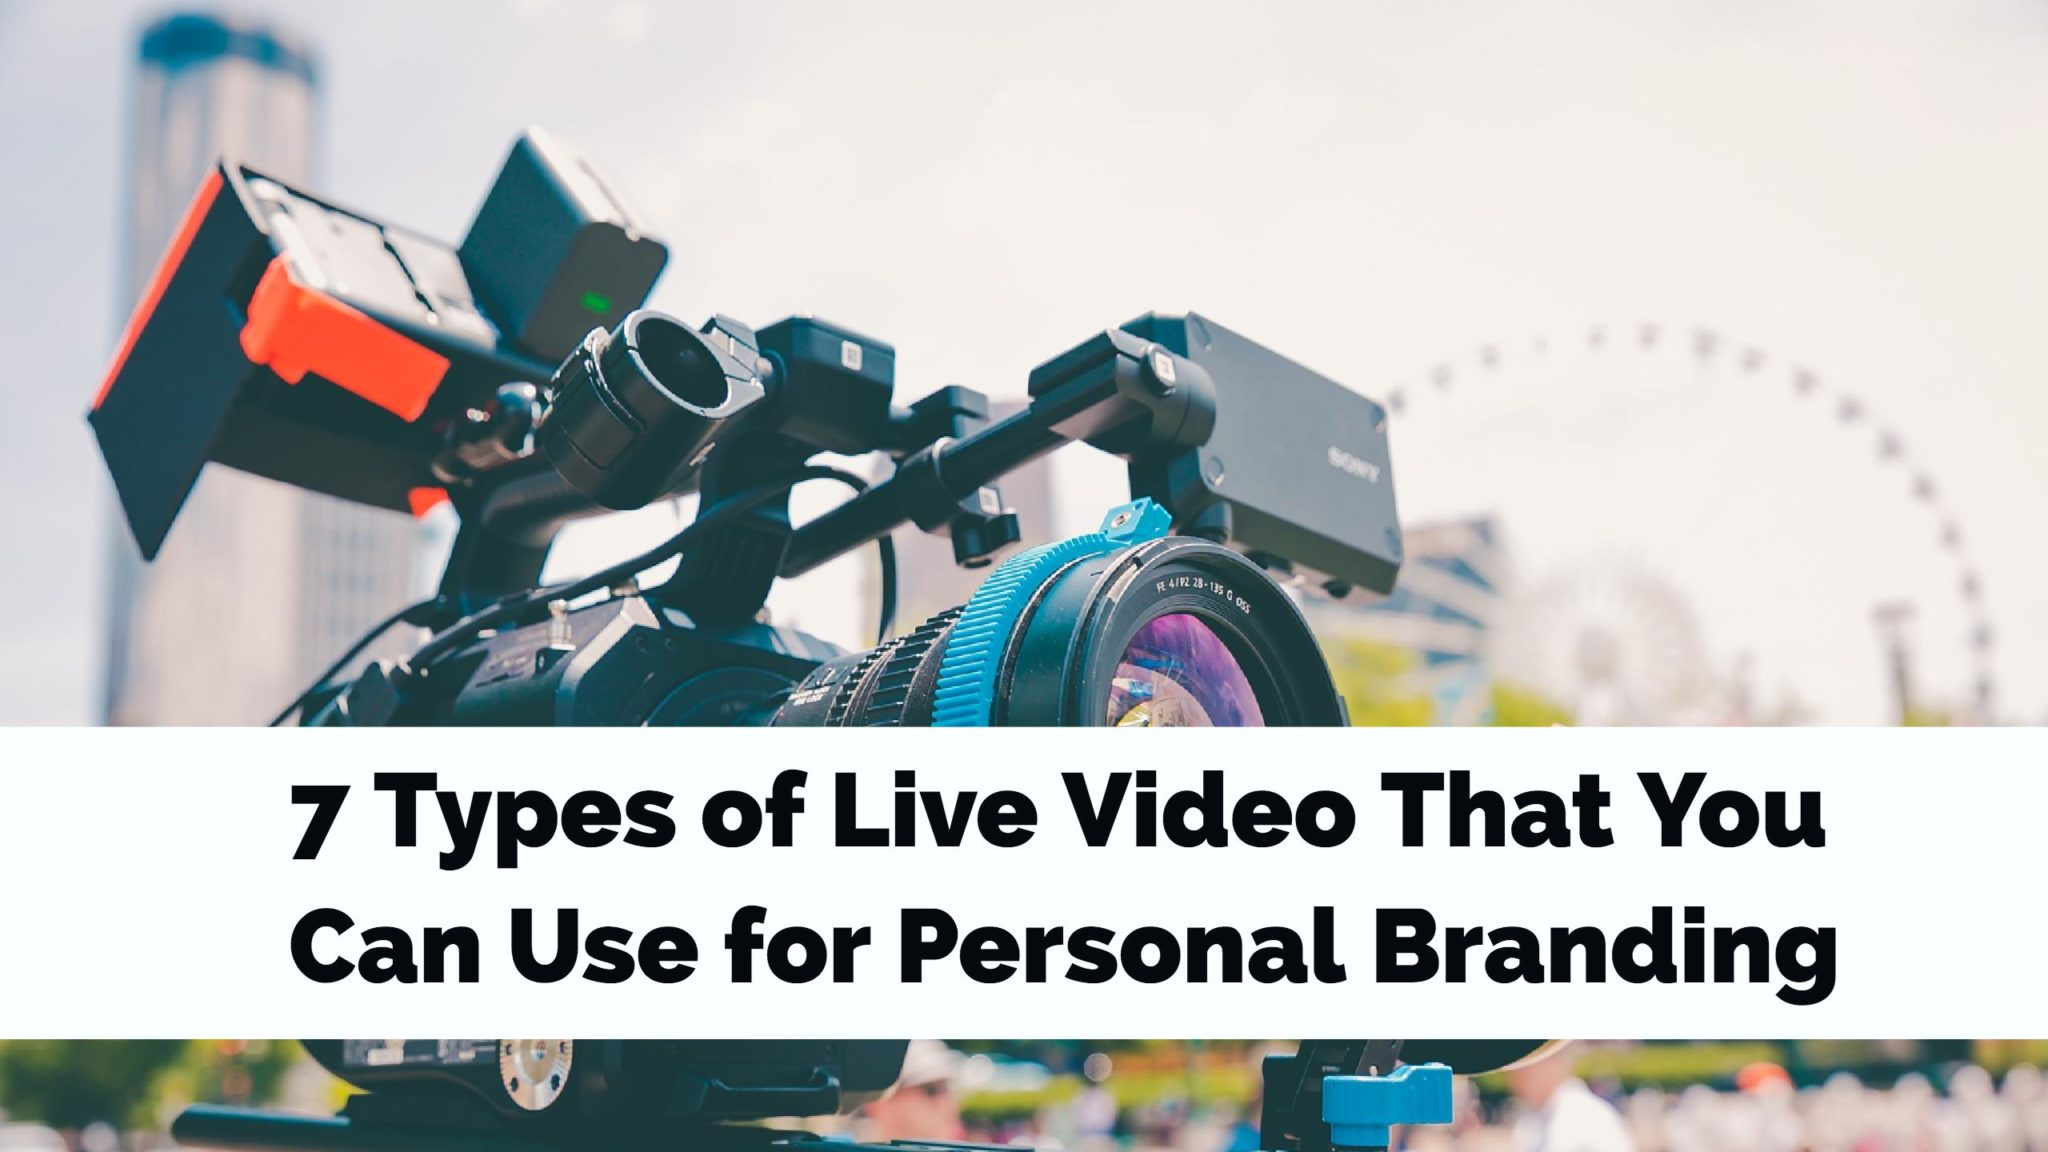 7 Types of Live Video That You Can Use for Personal Branding